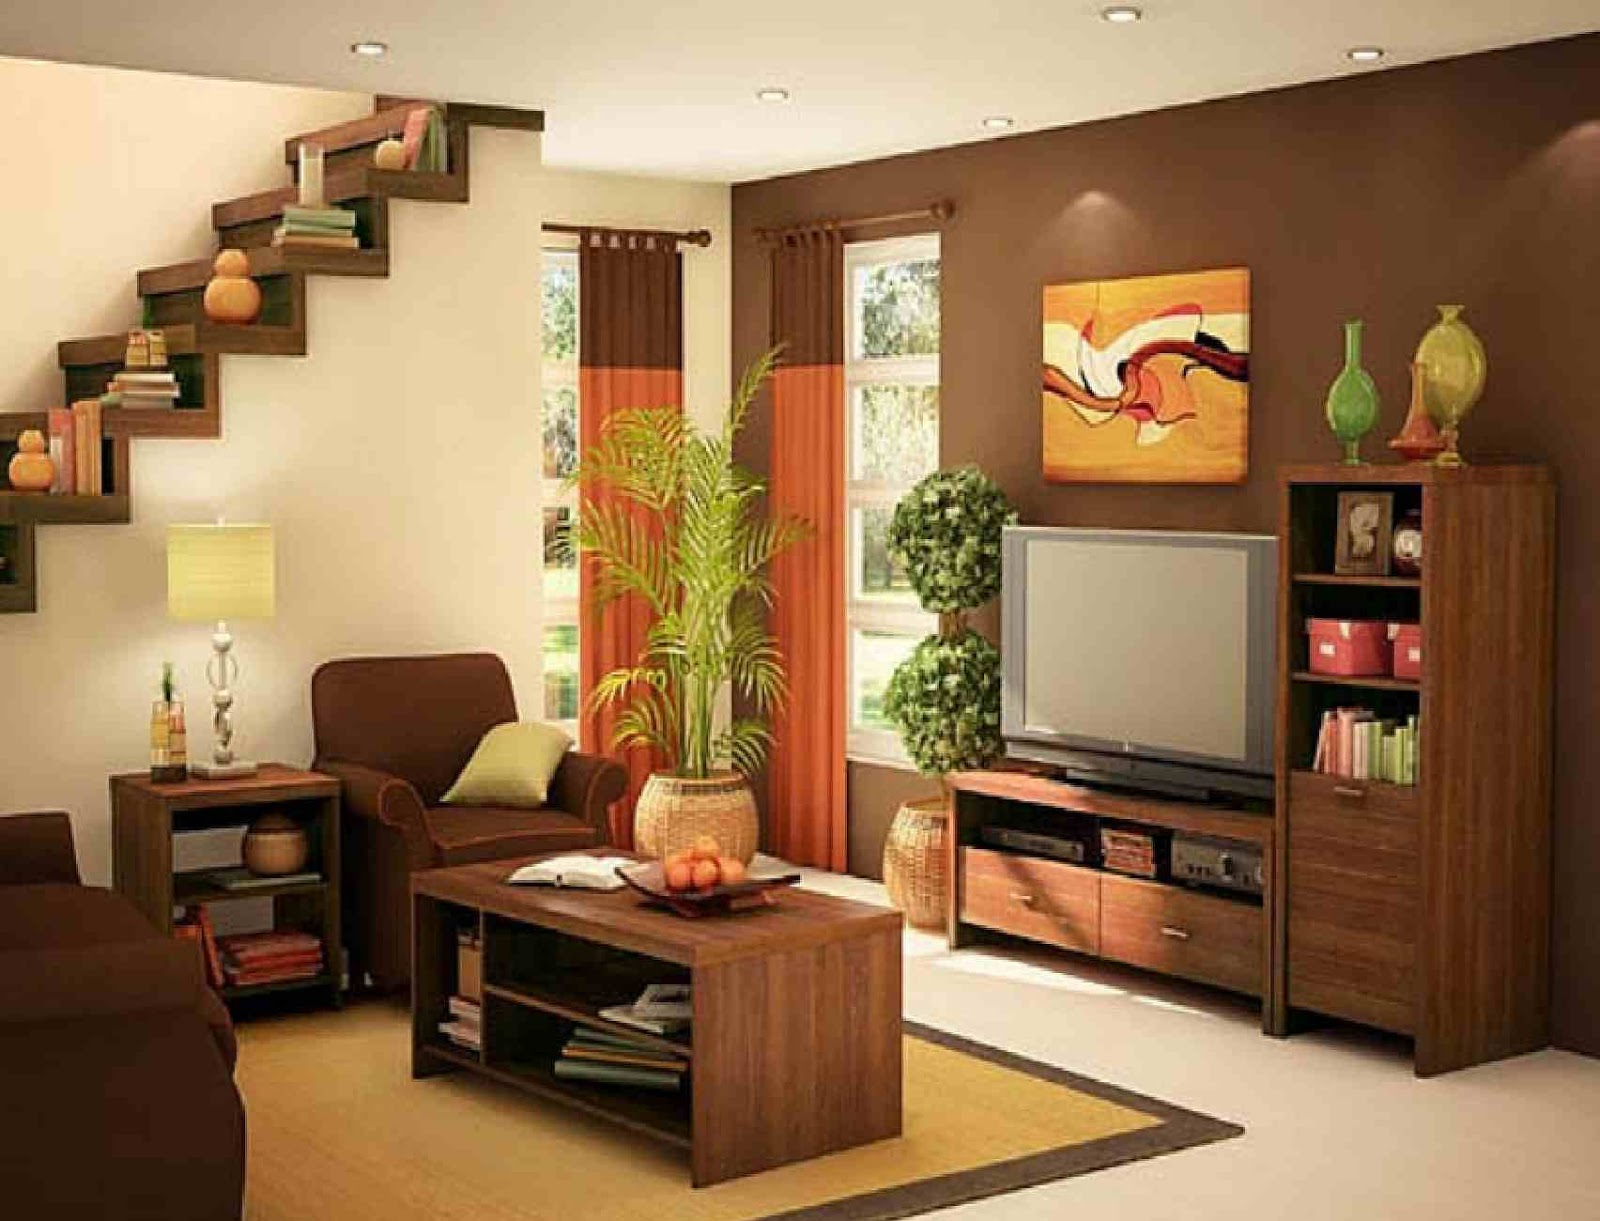 Simple living room designs dream house experience for Room decor ideas simple